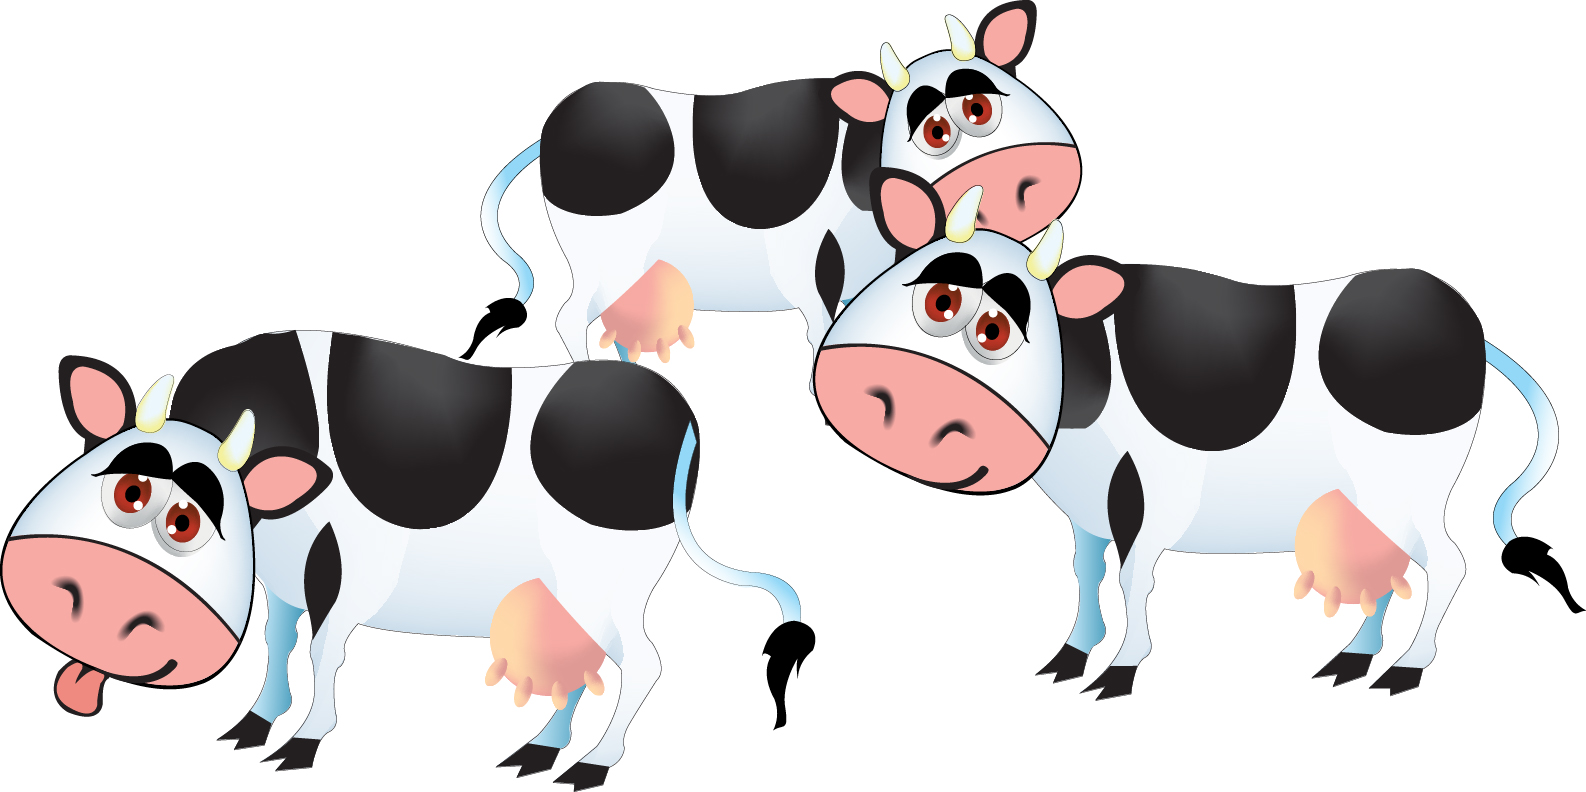 Something fishy resources images. Cattle clipart cattle herd